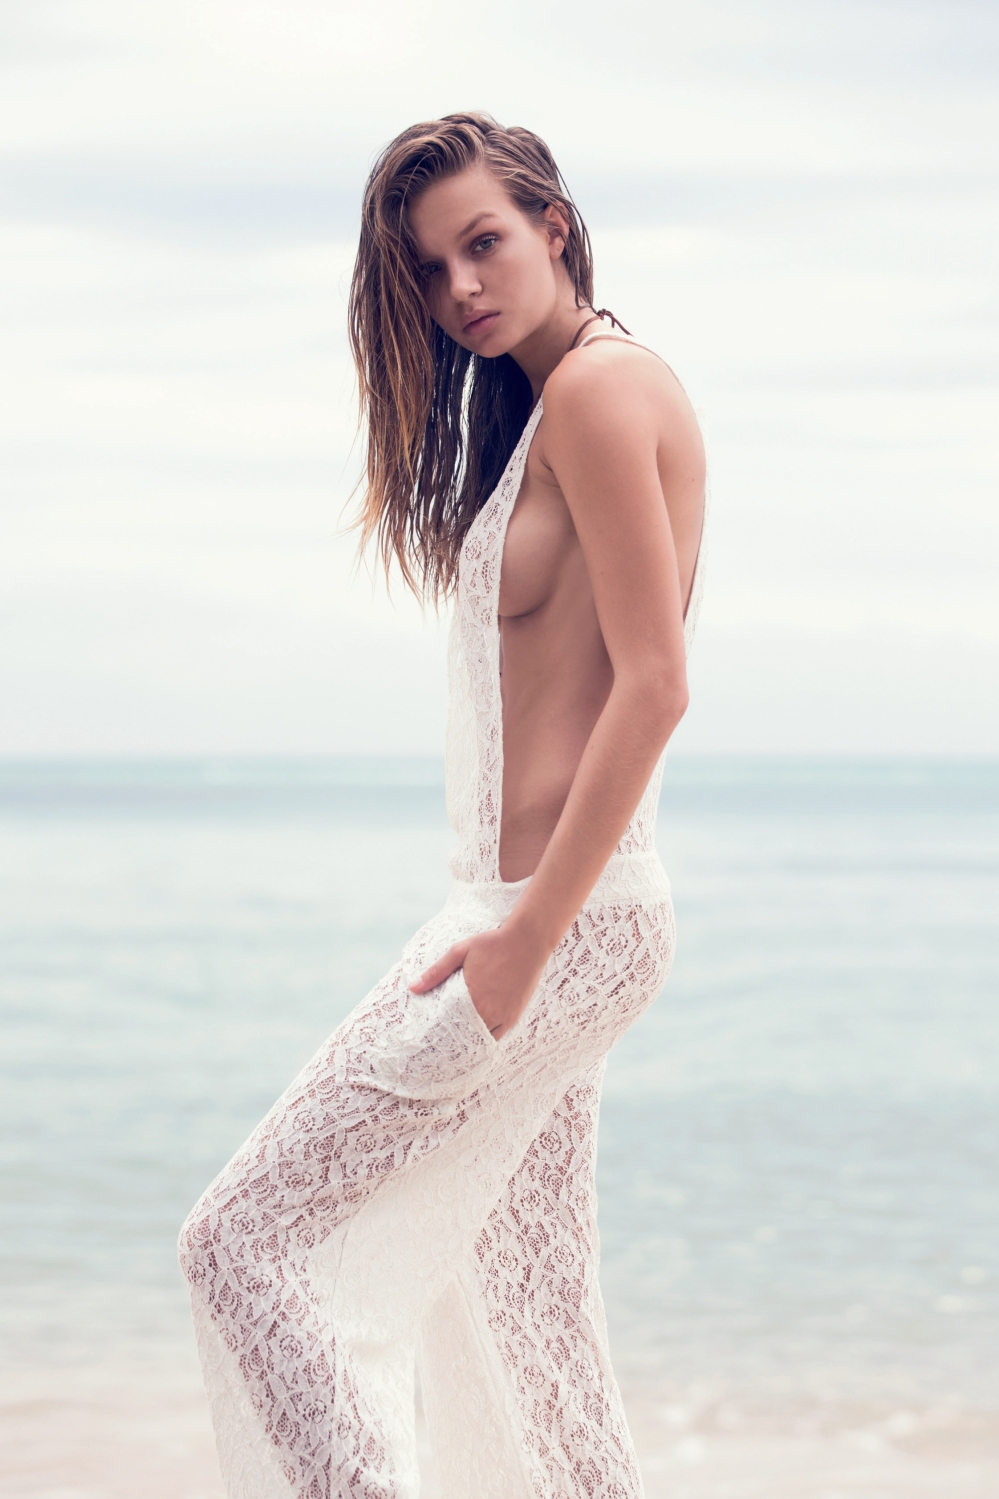 Josephine Skriver for Marie Claire by David Bellemere 18